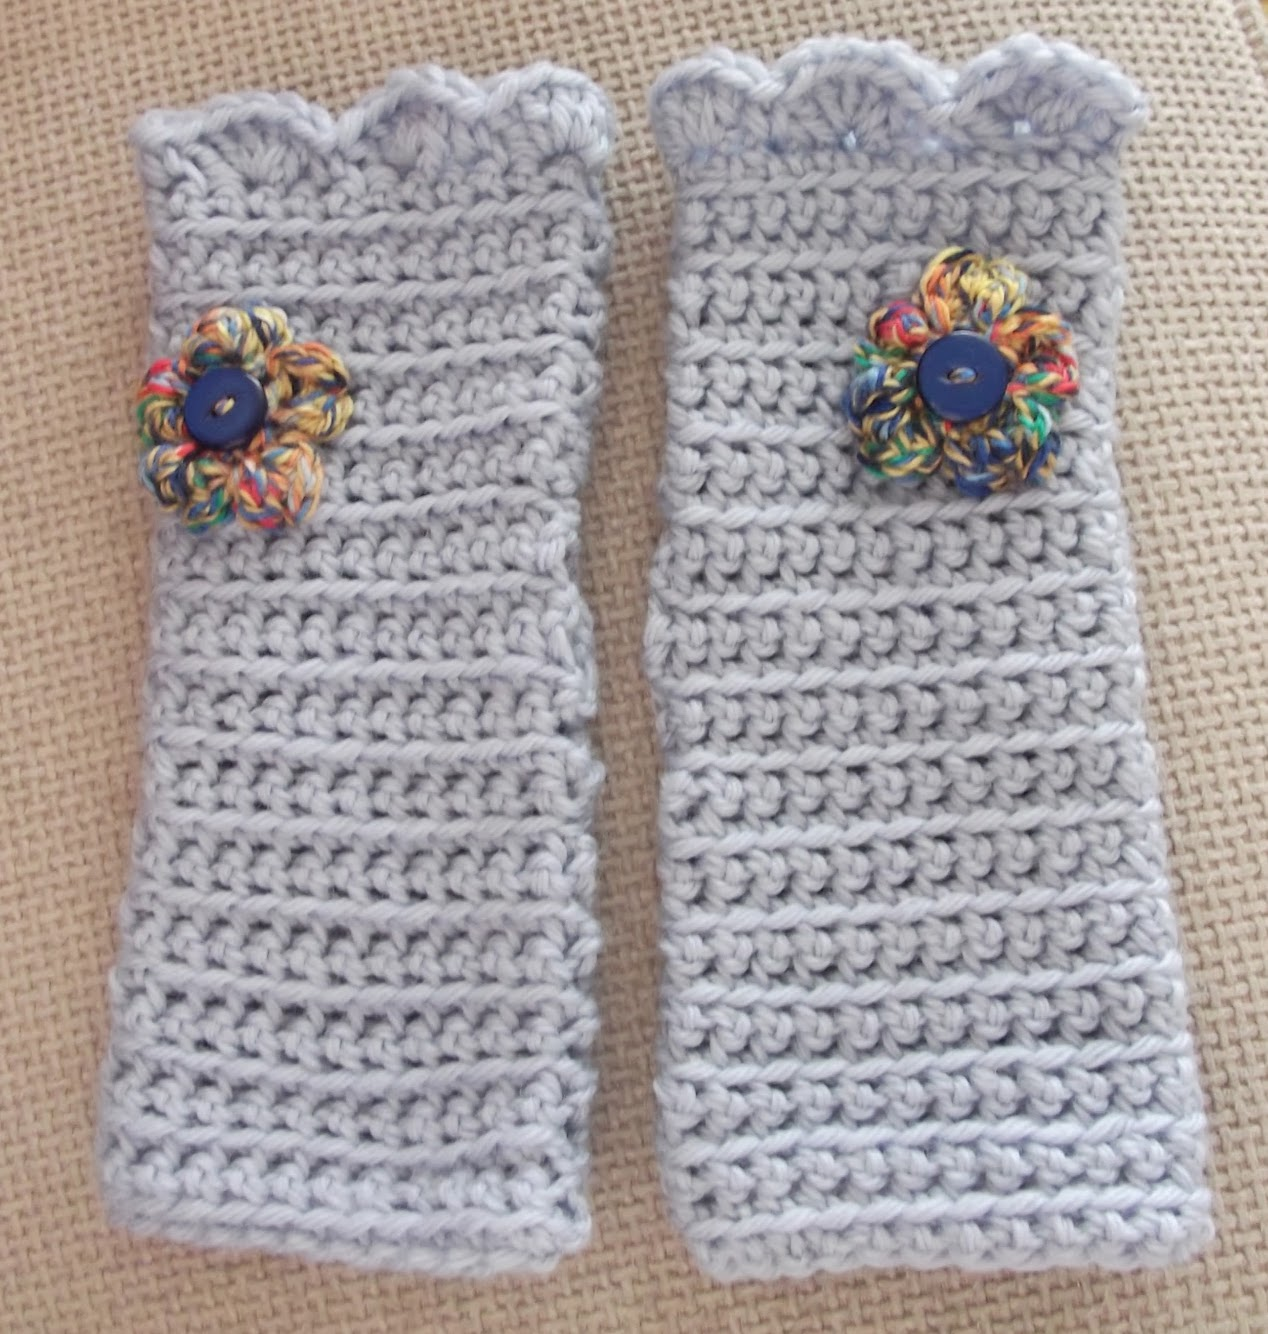 Crochet Wristwarmers Pattern and Tutorial